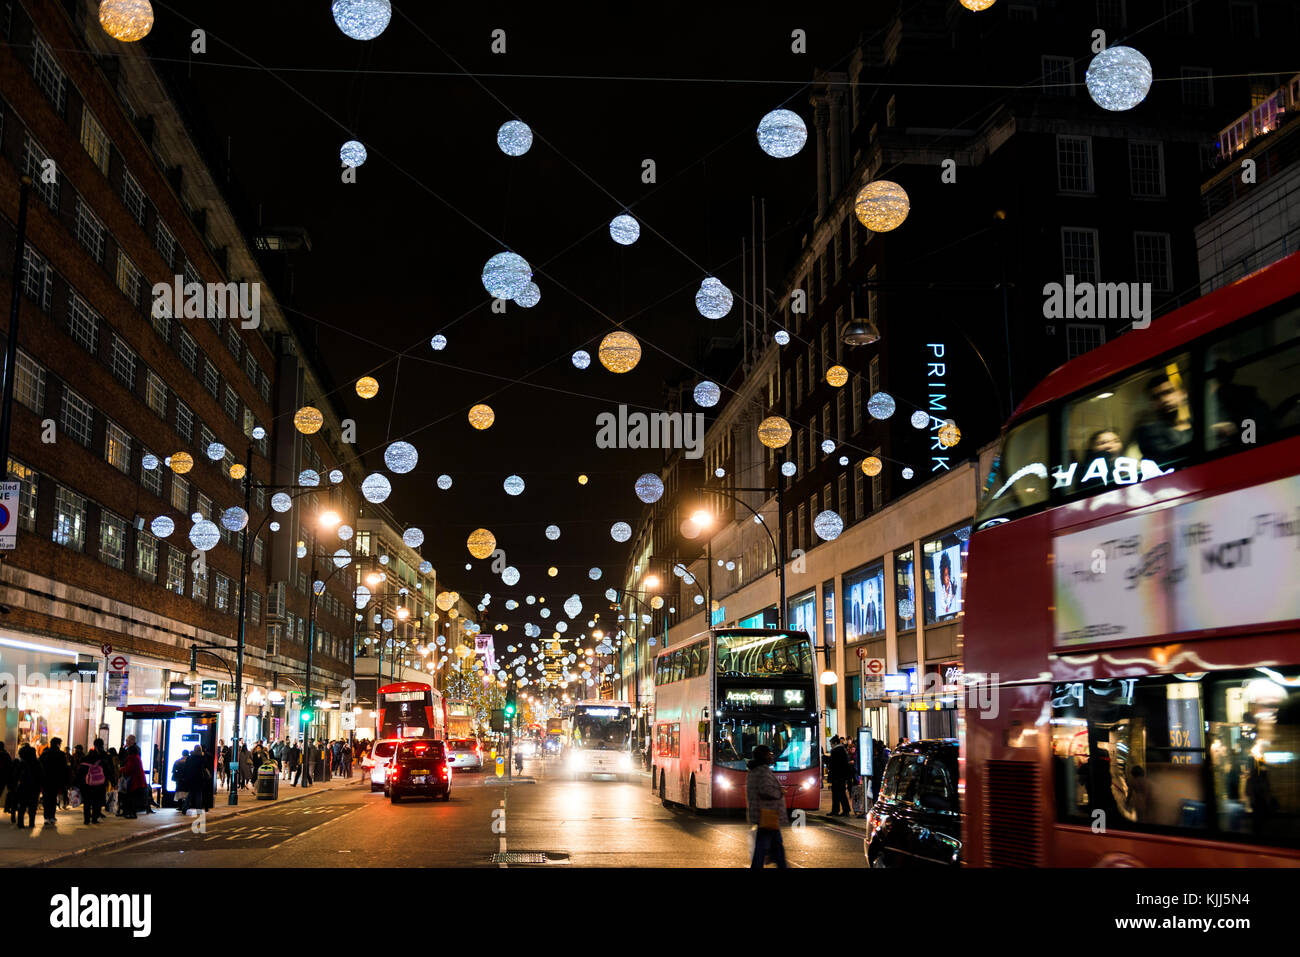 Christmas in Oxford Street and decorations - Stock Image